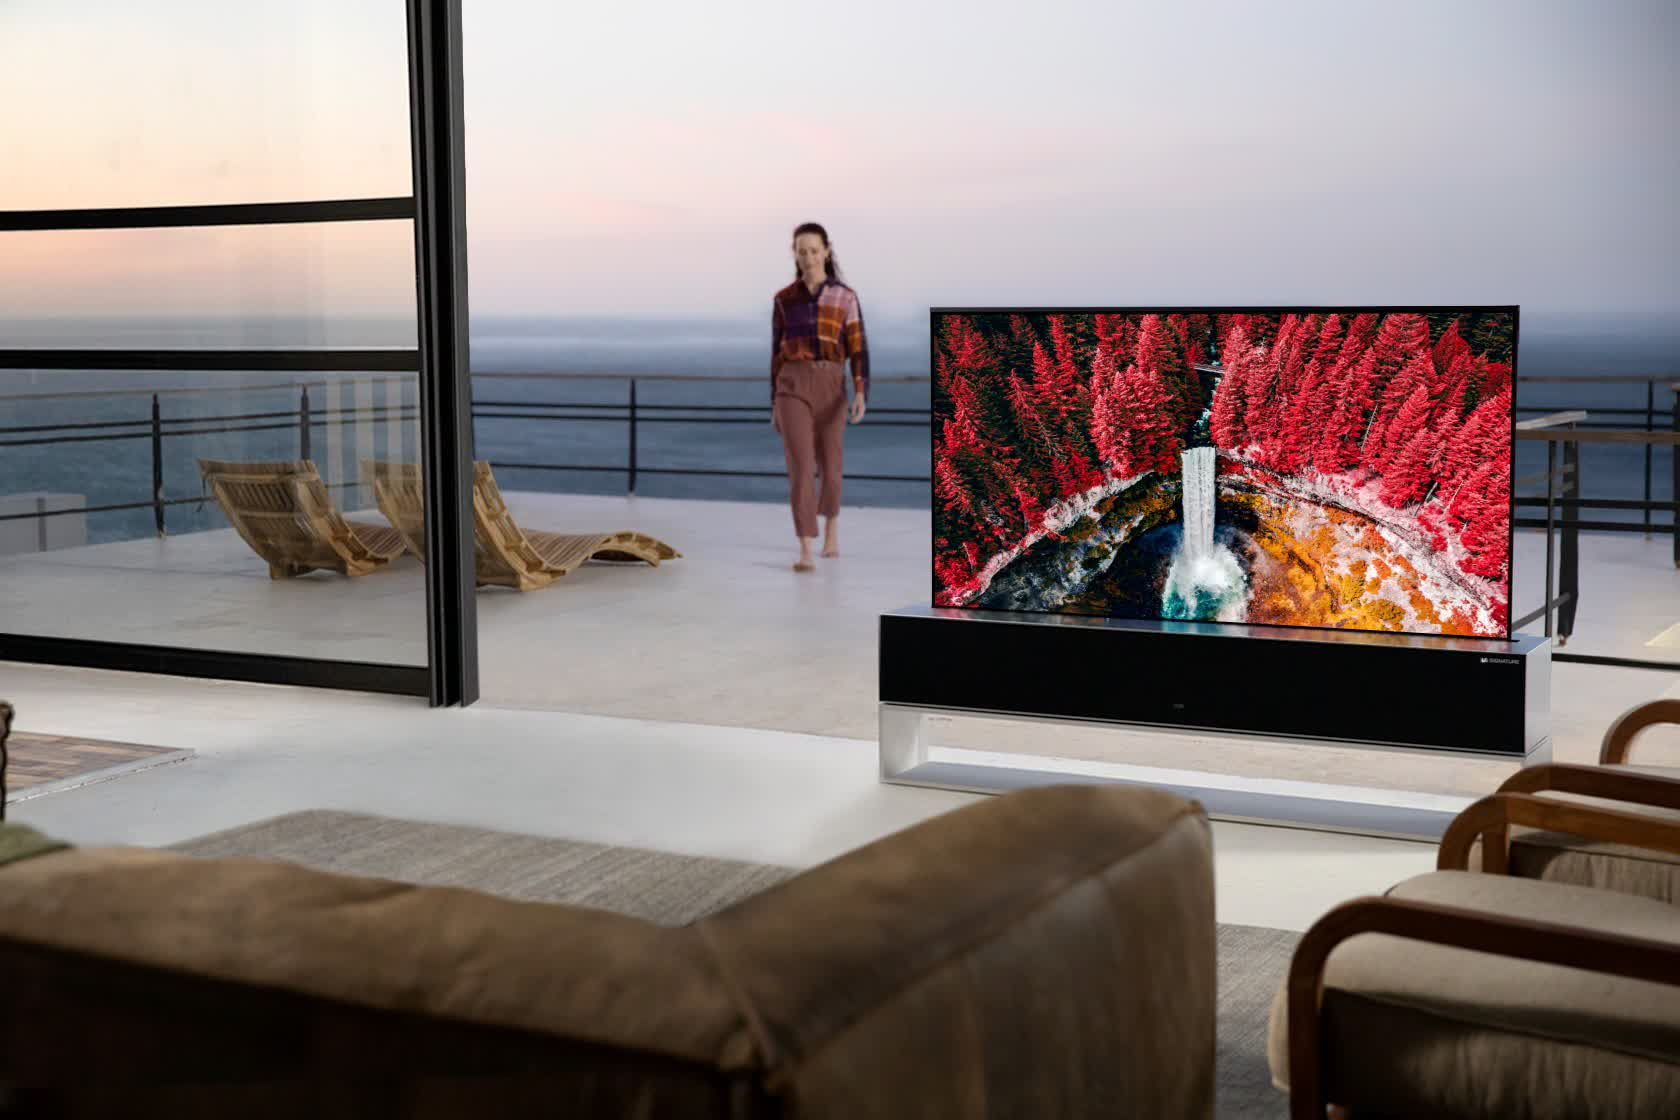 LG's rollable 4K OLED TV is arriving in the US with a $100,000 price tag